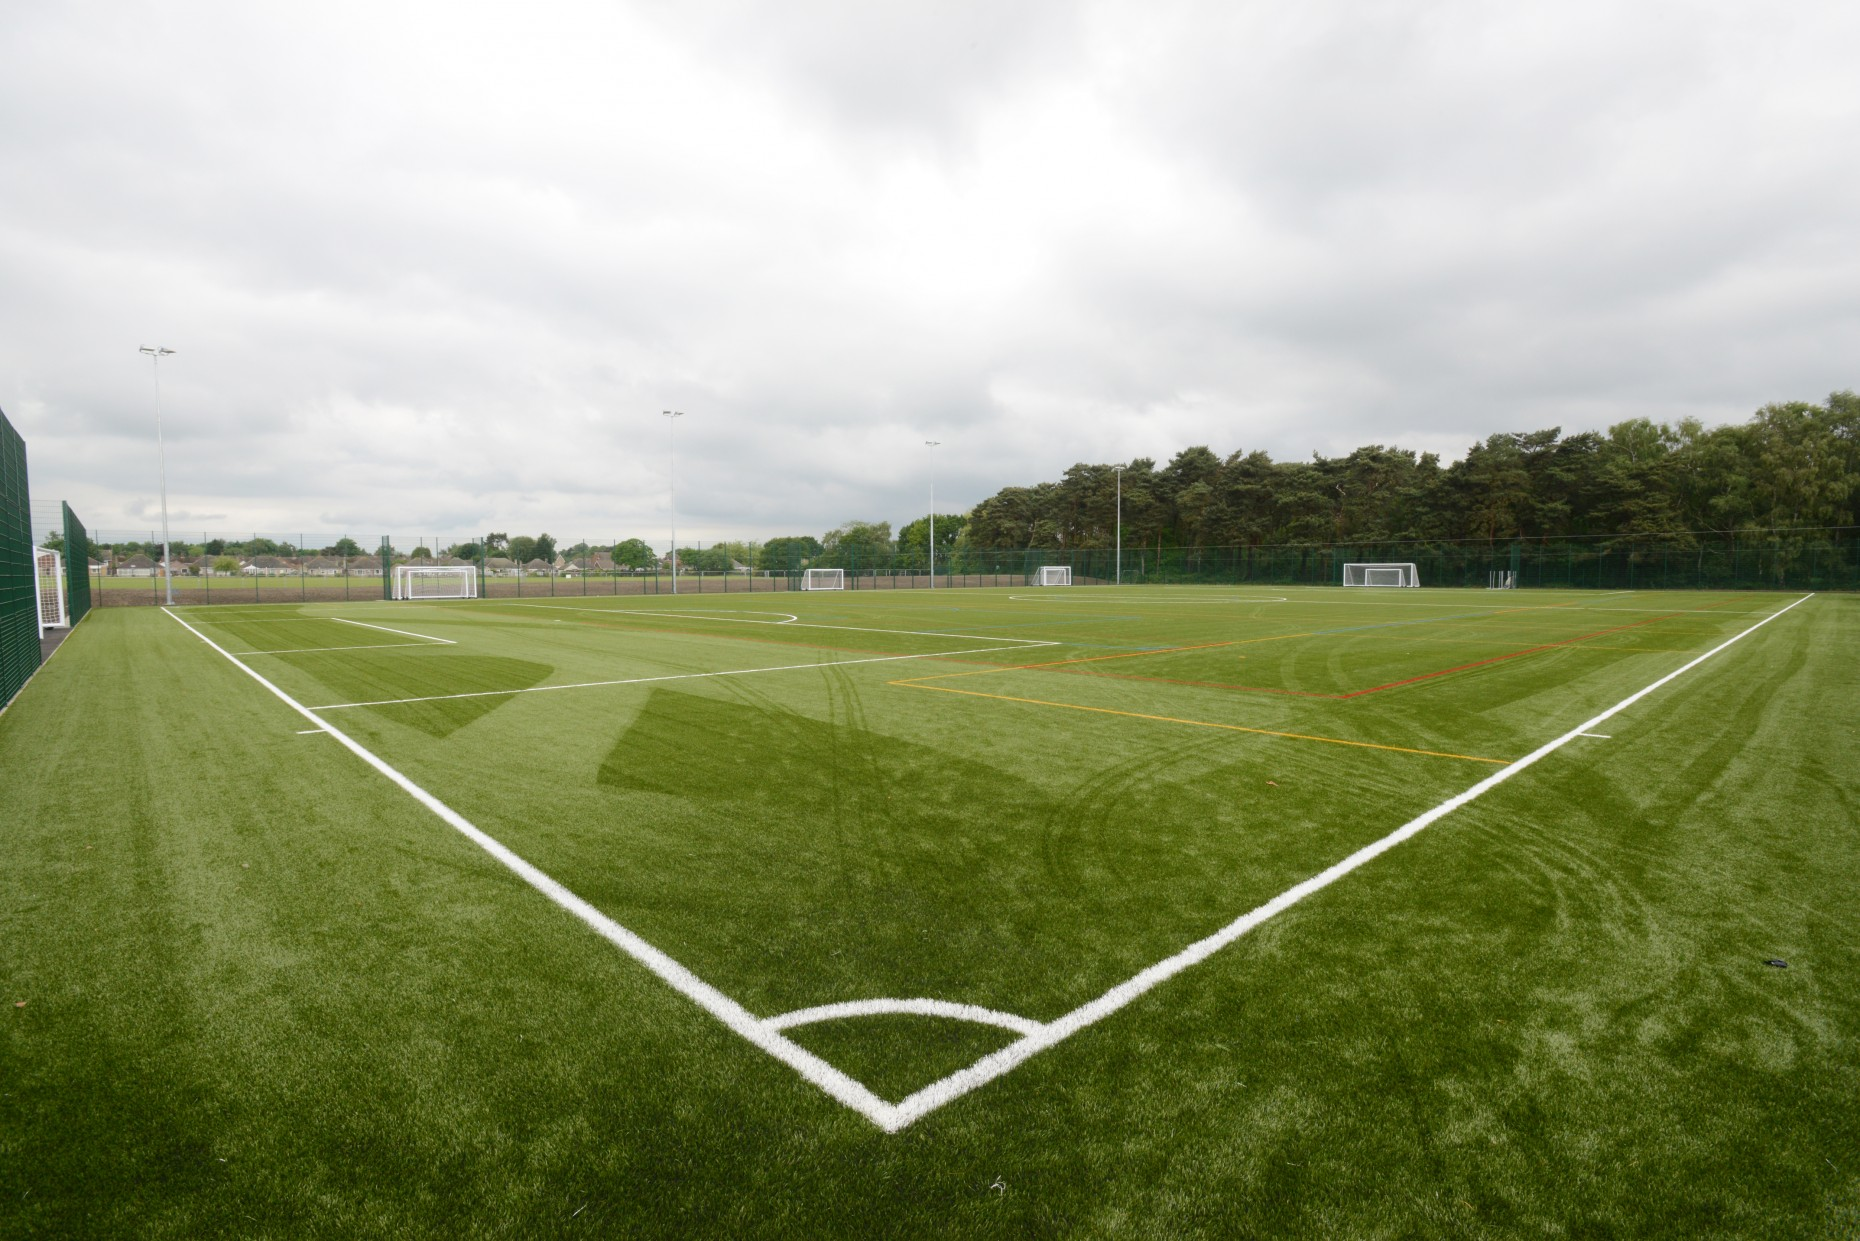 The school's new 3G artificial pitch was made possible after significant grants.